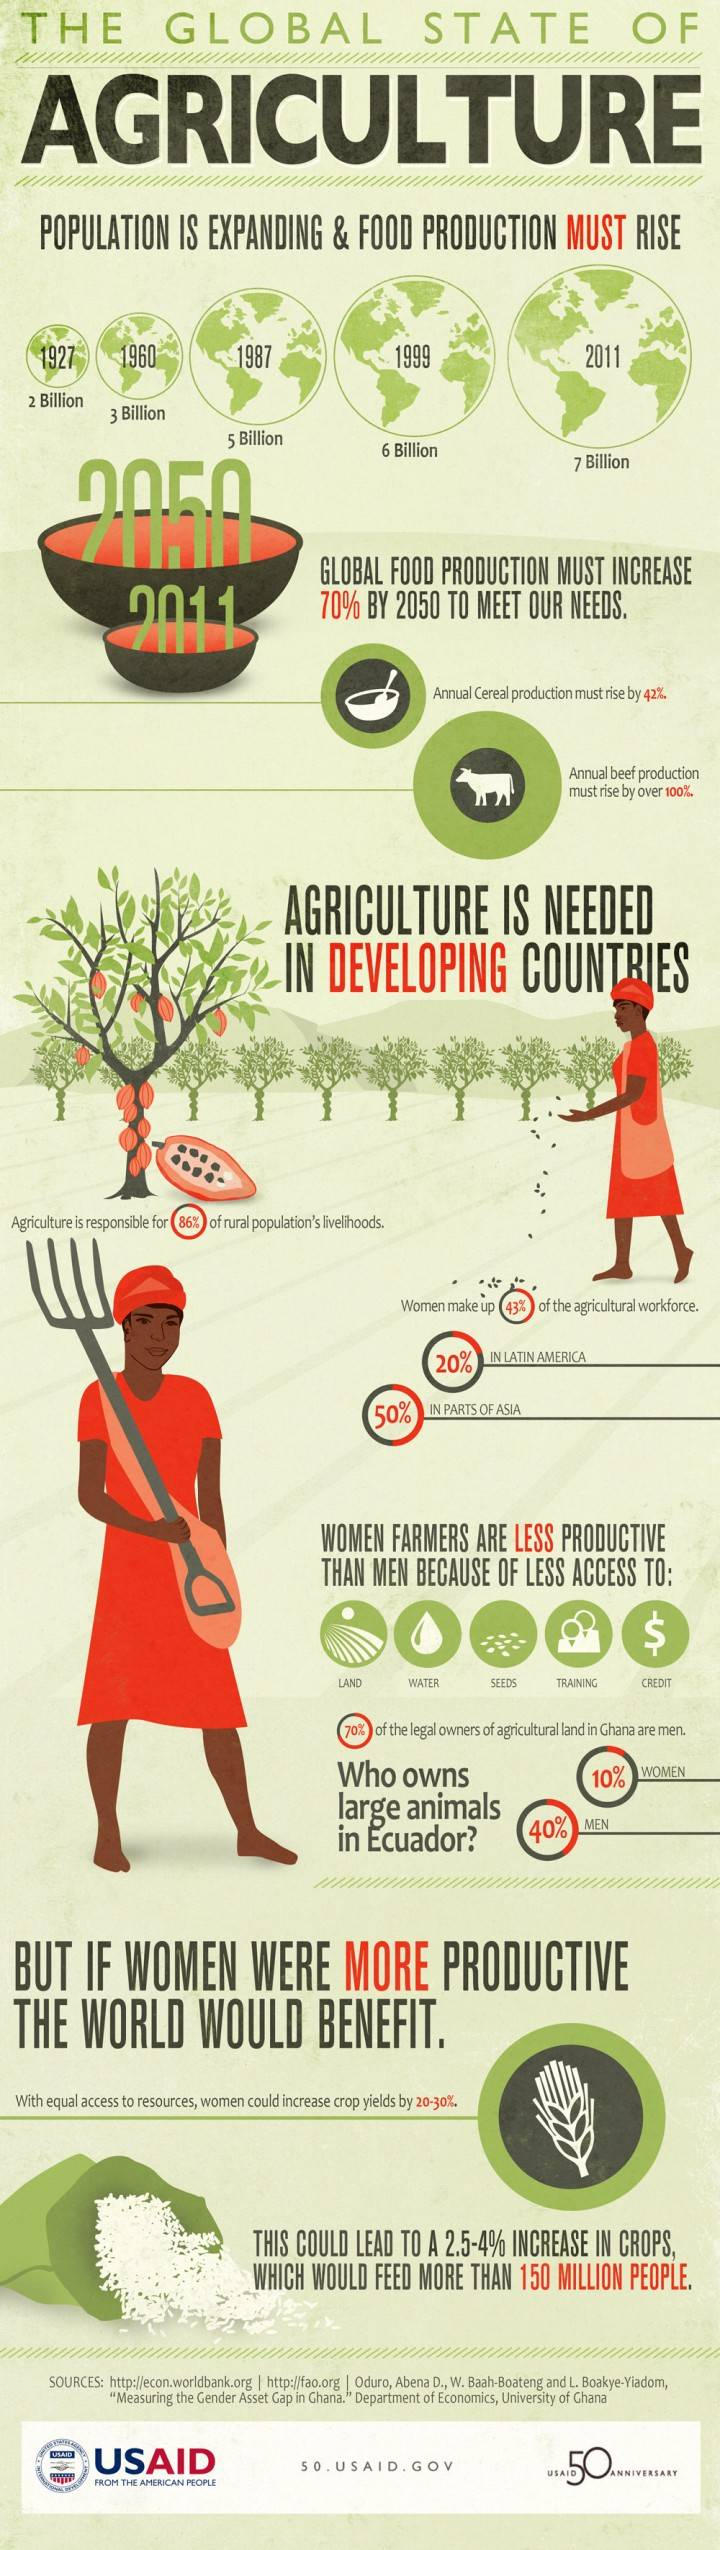 Agriculture Statistics and Trends in Developing Countries